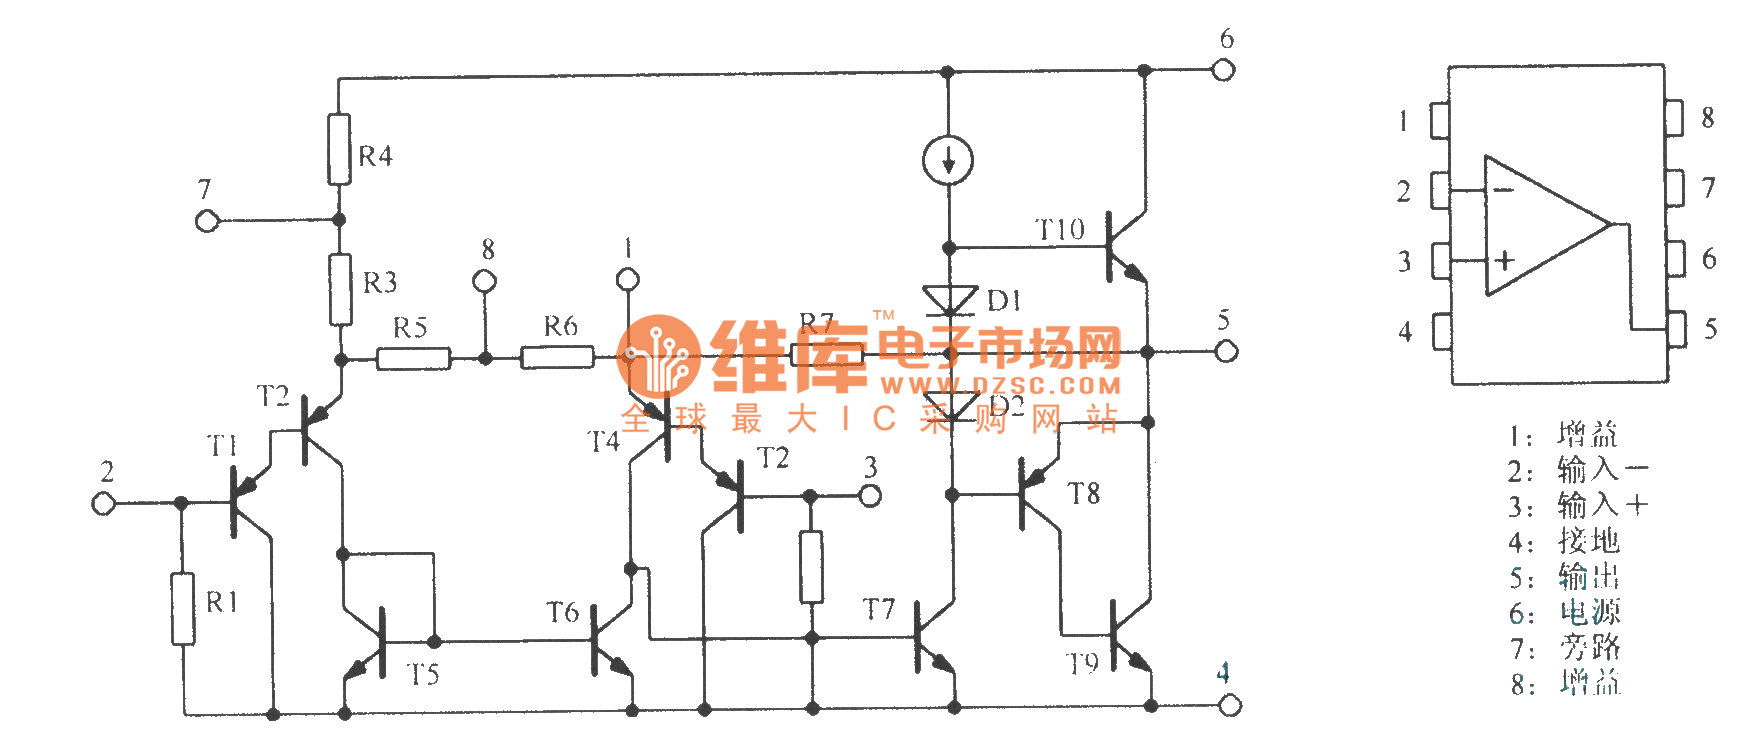 General Equivalent Circuit And Package Of Lm386 Power Amplifier Basic Home Wiring Diagrams Http Wwwseekiccom Circuitdiagram